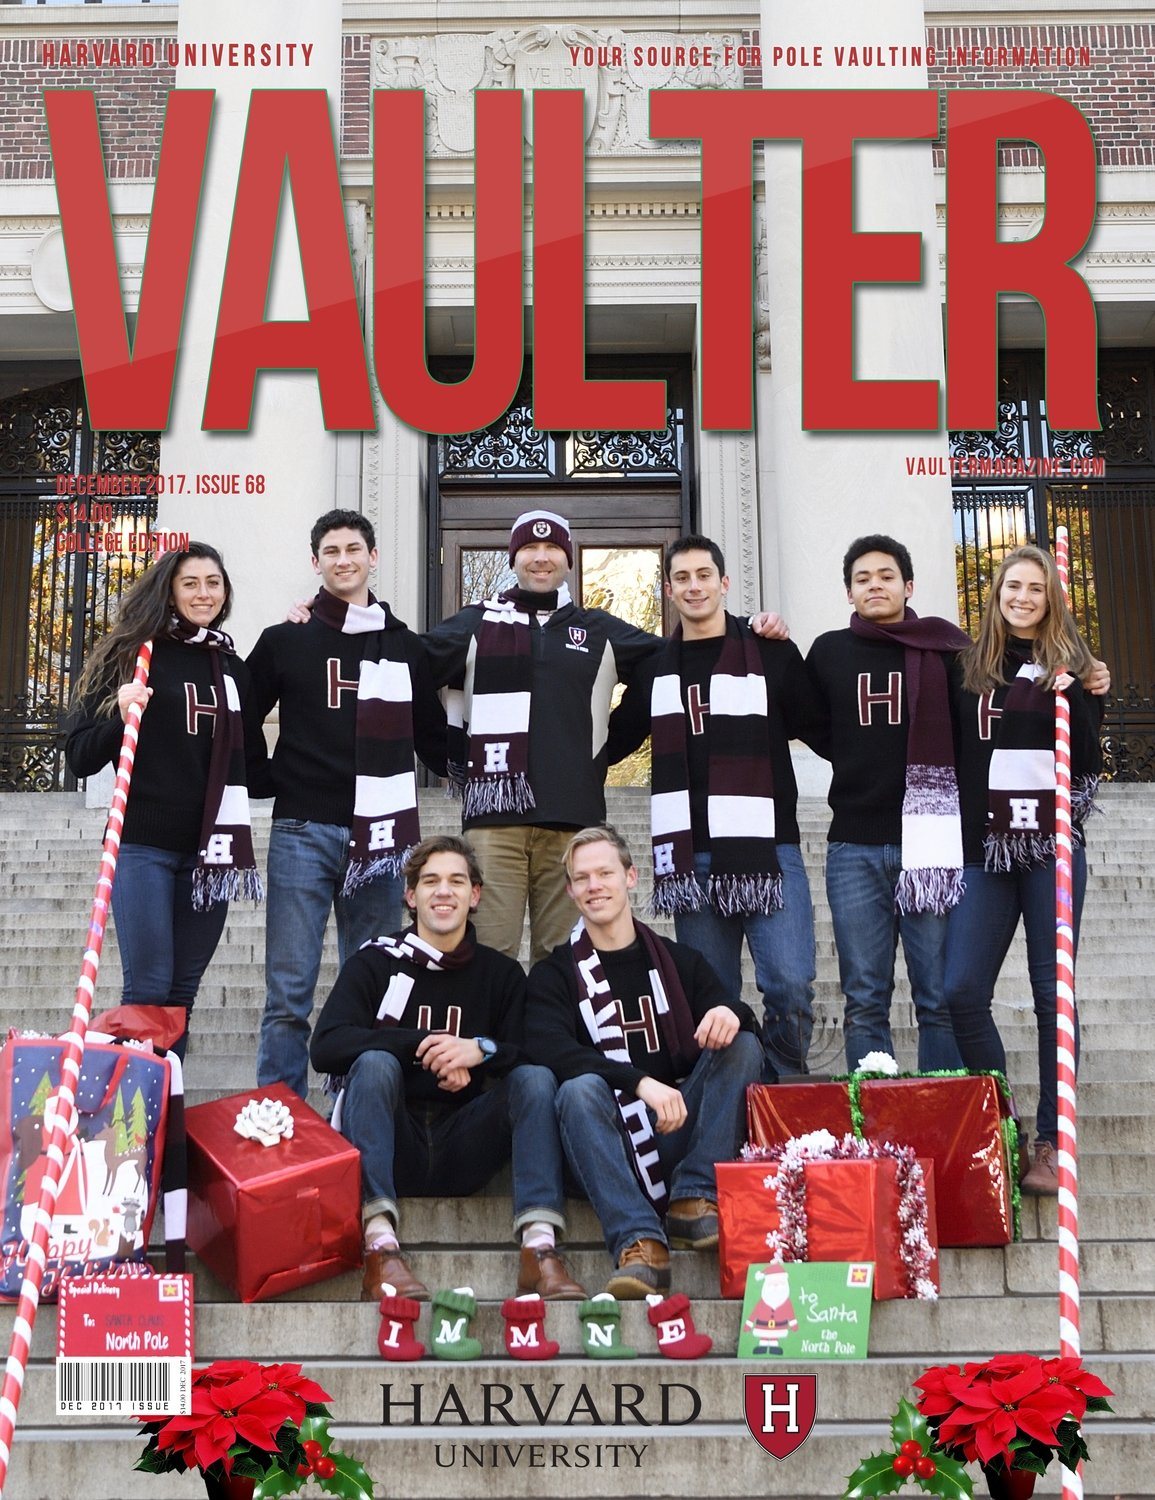 December 2017 Harvard University Issue of Vaulter Magazine Digital Download